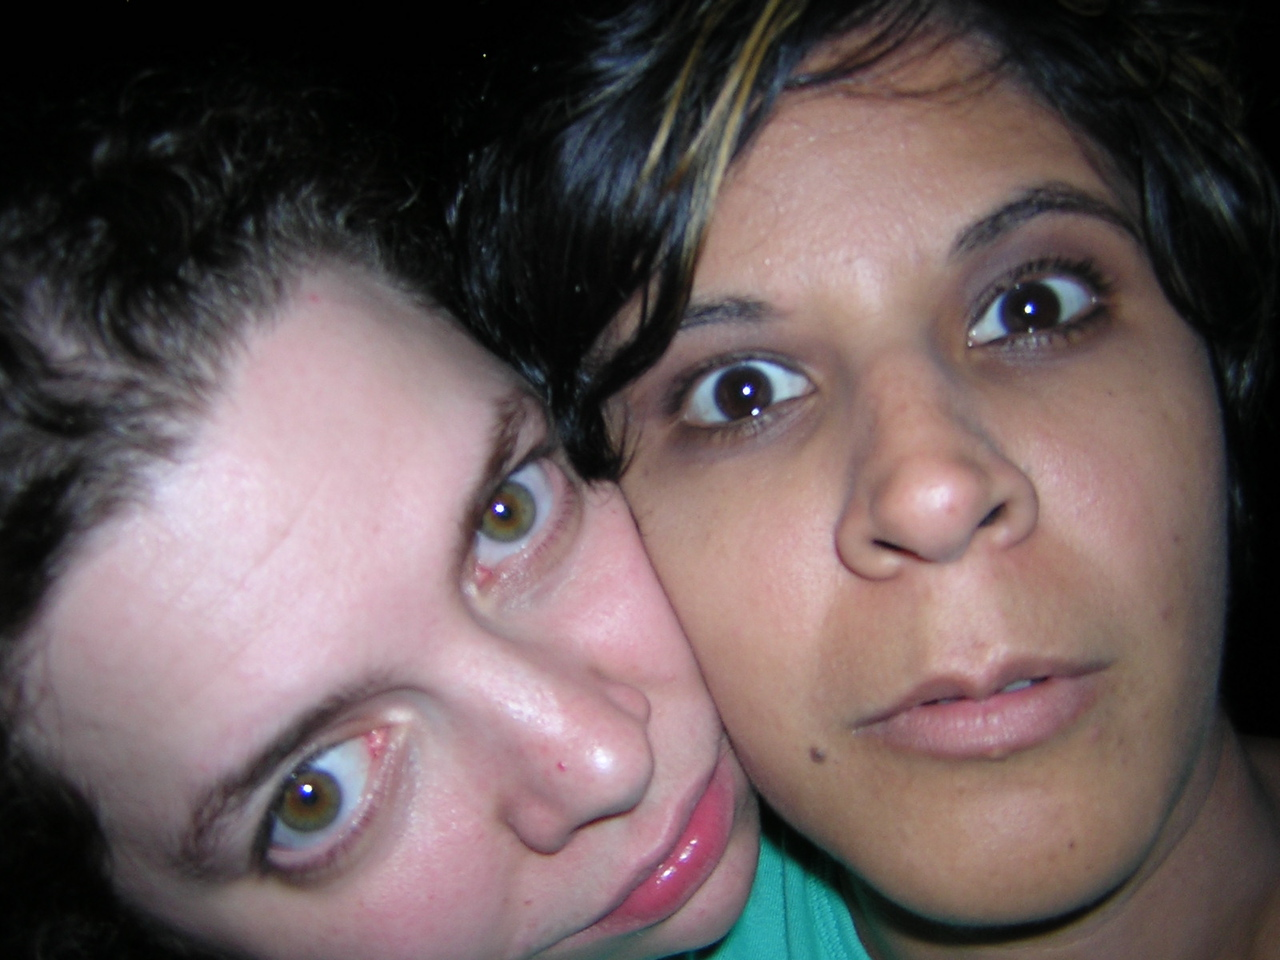 I think someone hijacked my camera, but isn't this a cute pic of Erin and Laurie?